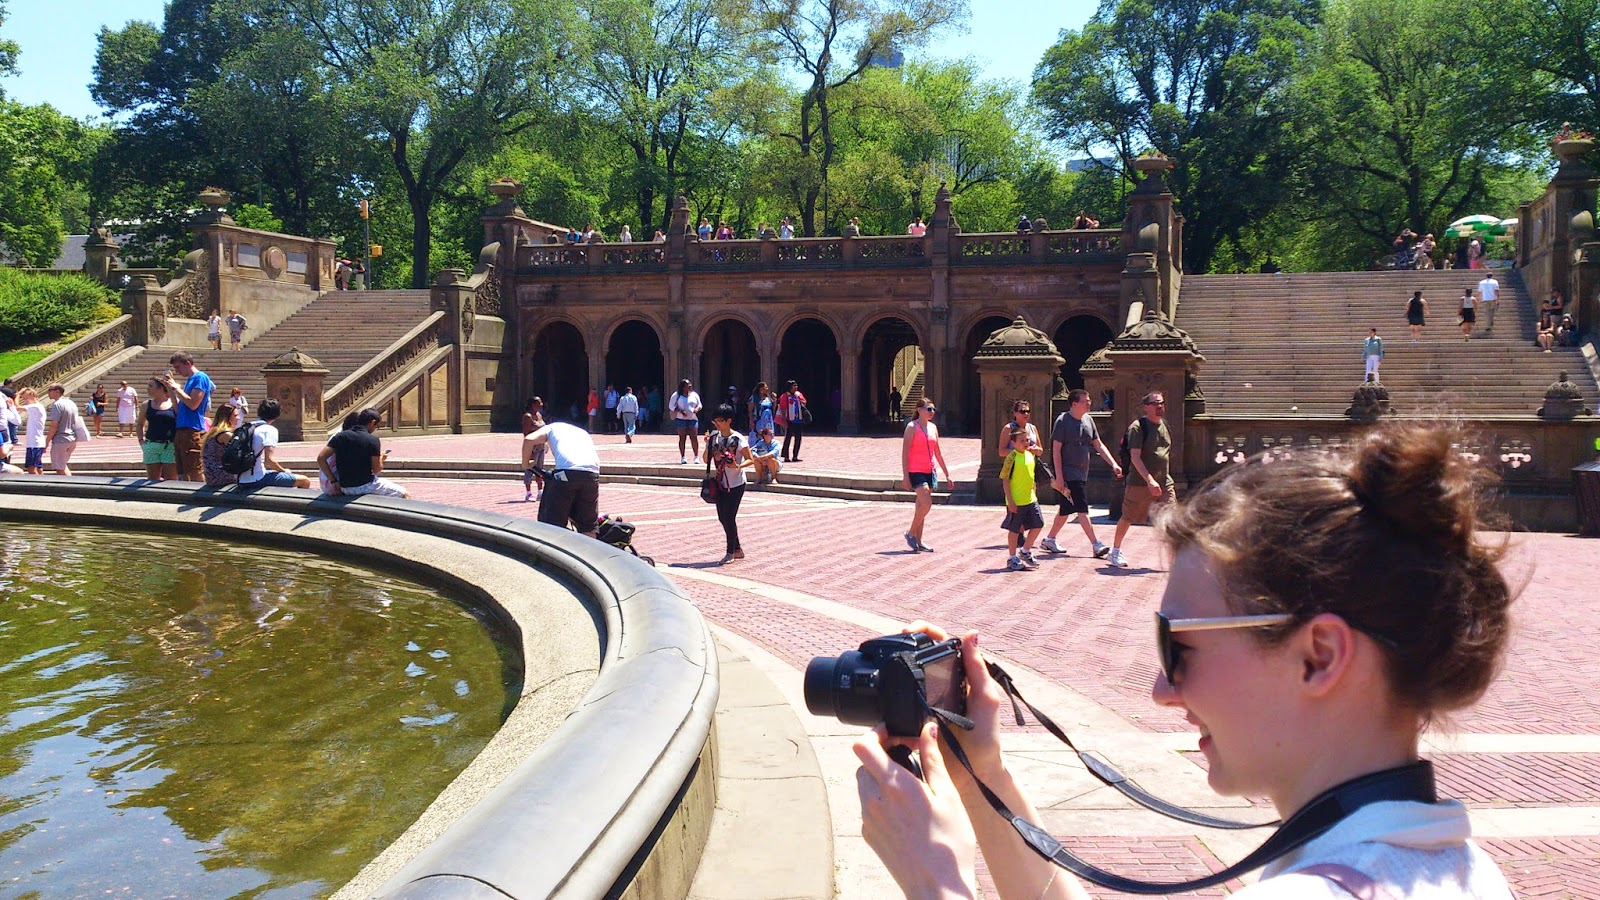 new york city central park architecture fountain photography tree people girl